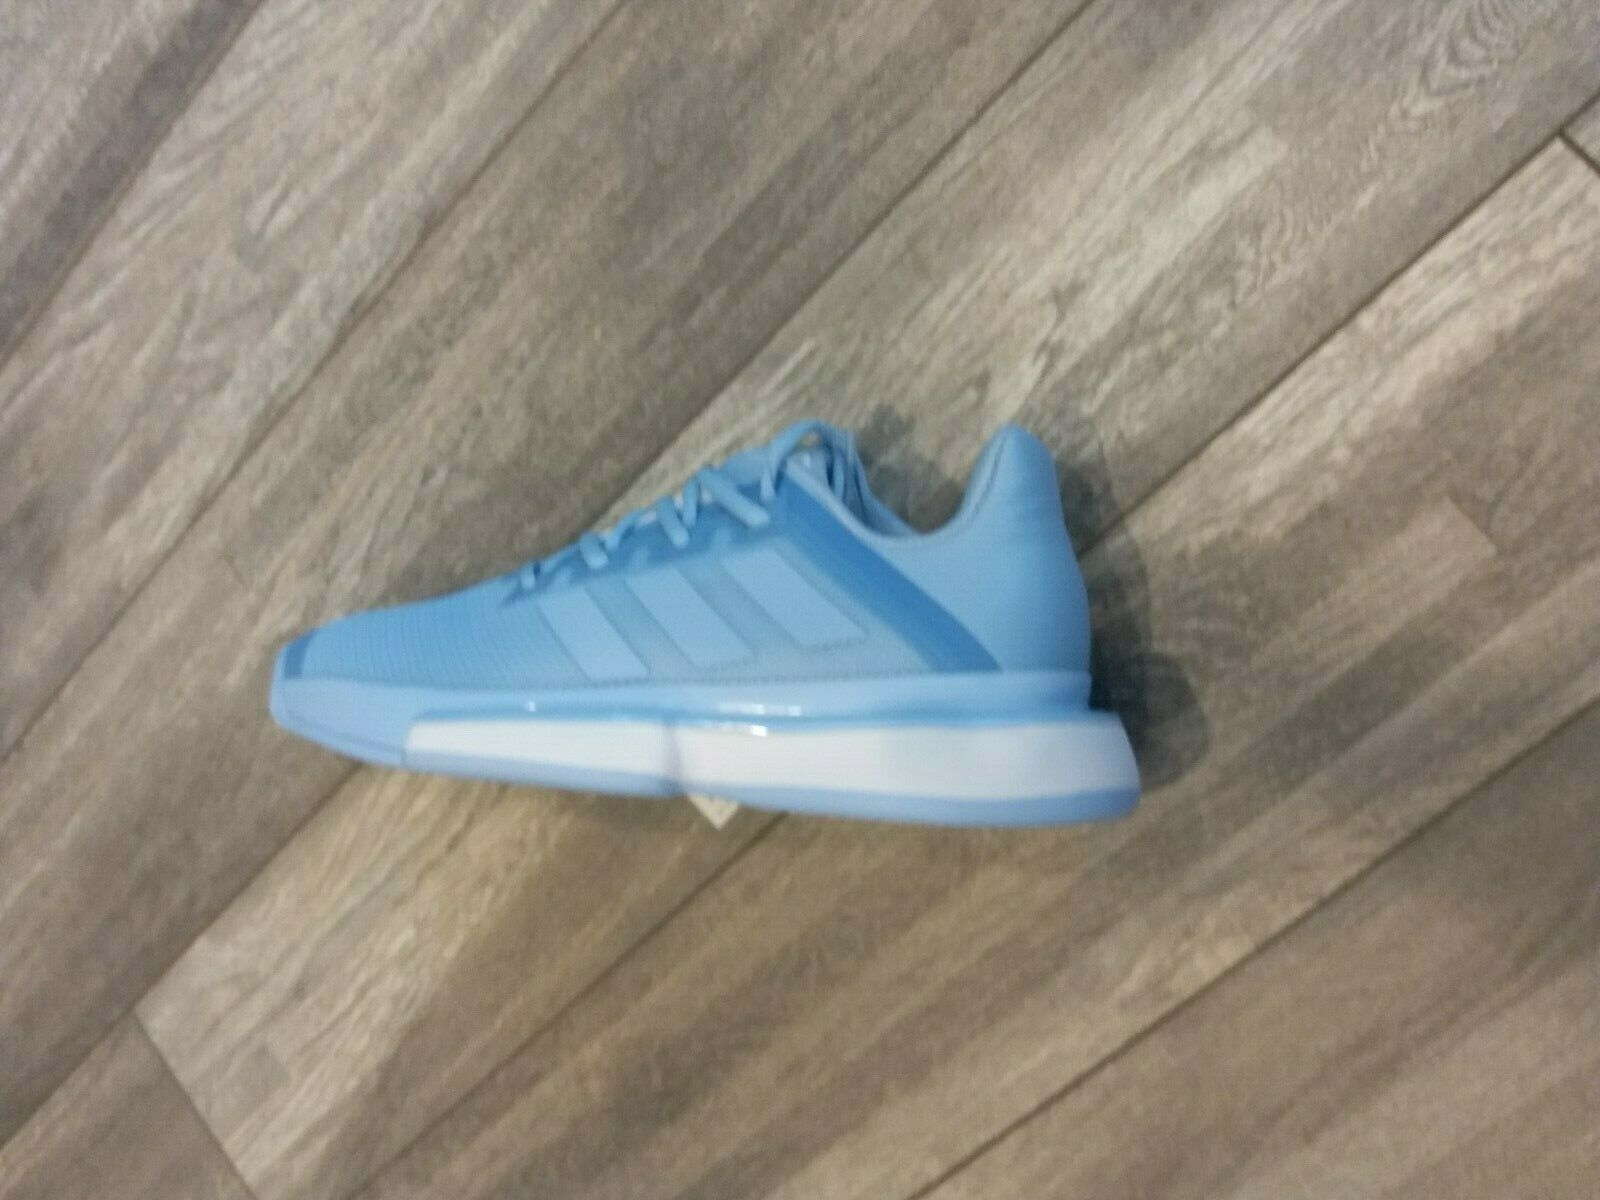 Primary image for Adidas new sole match bounce EE9561 Adiwear Blue